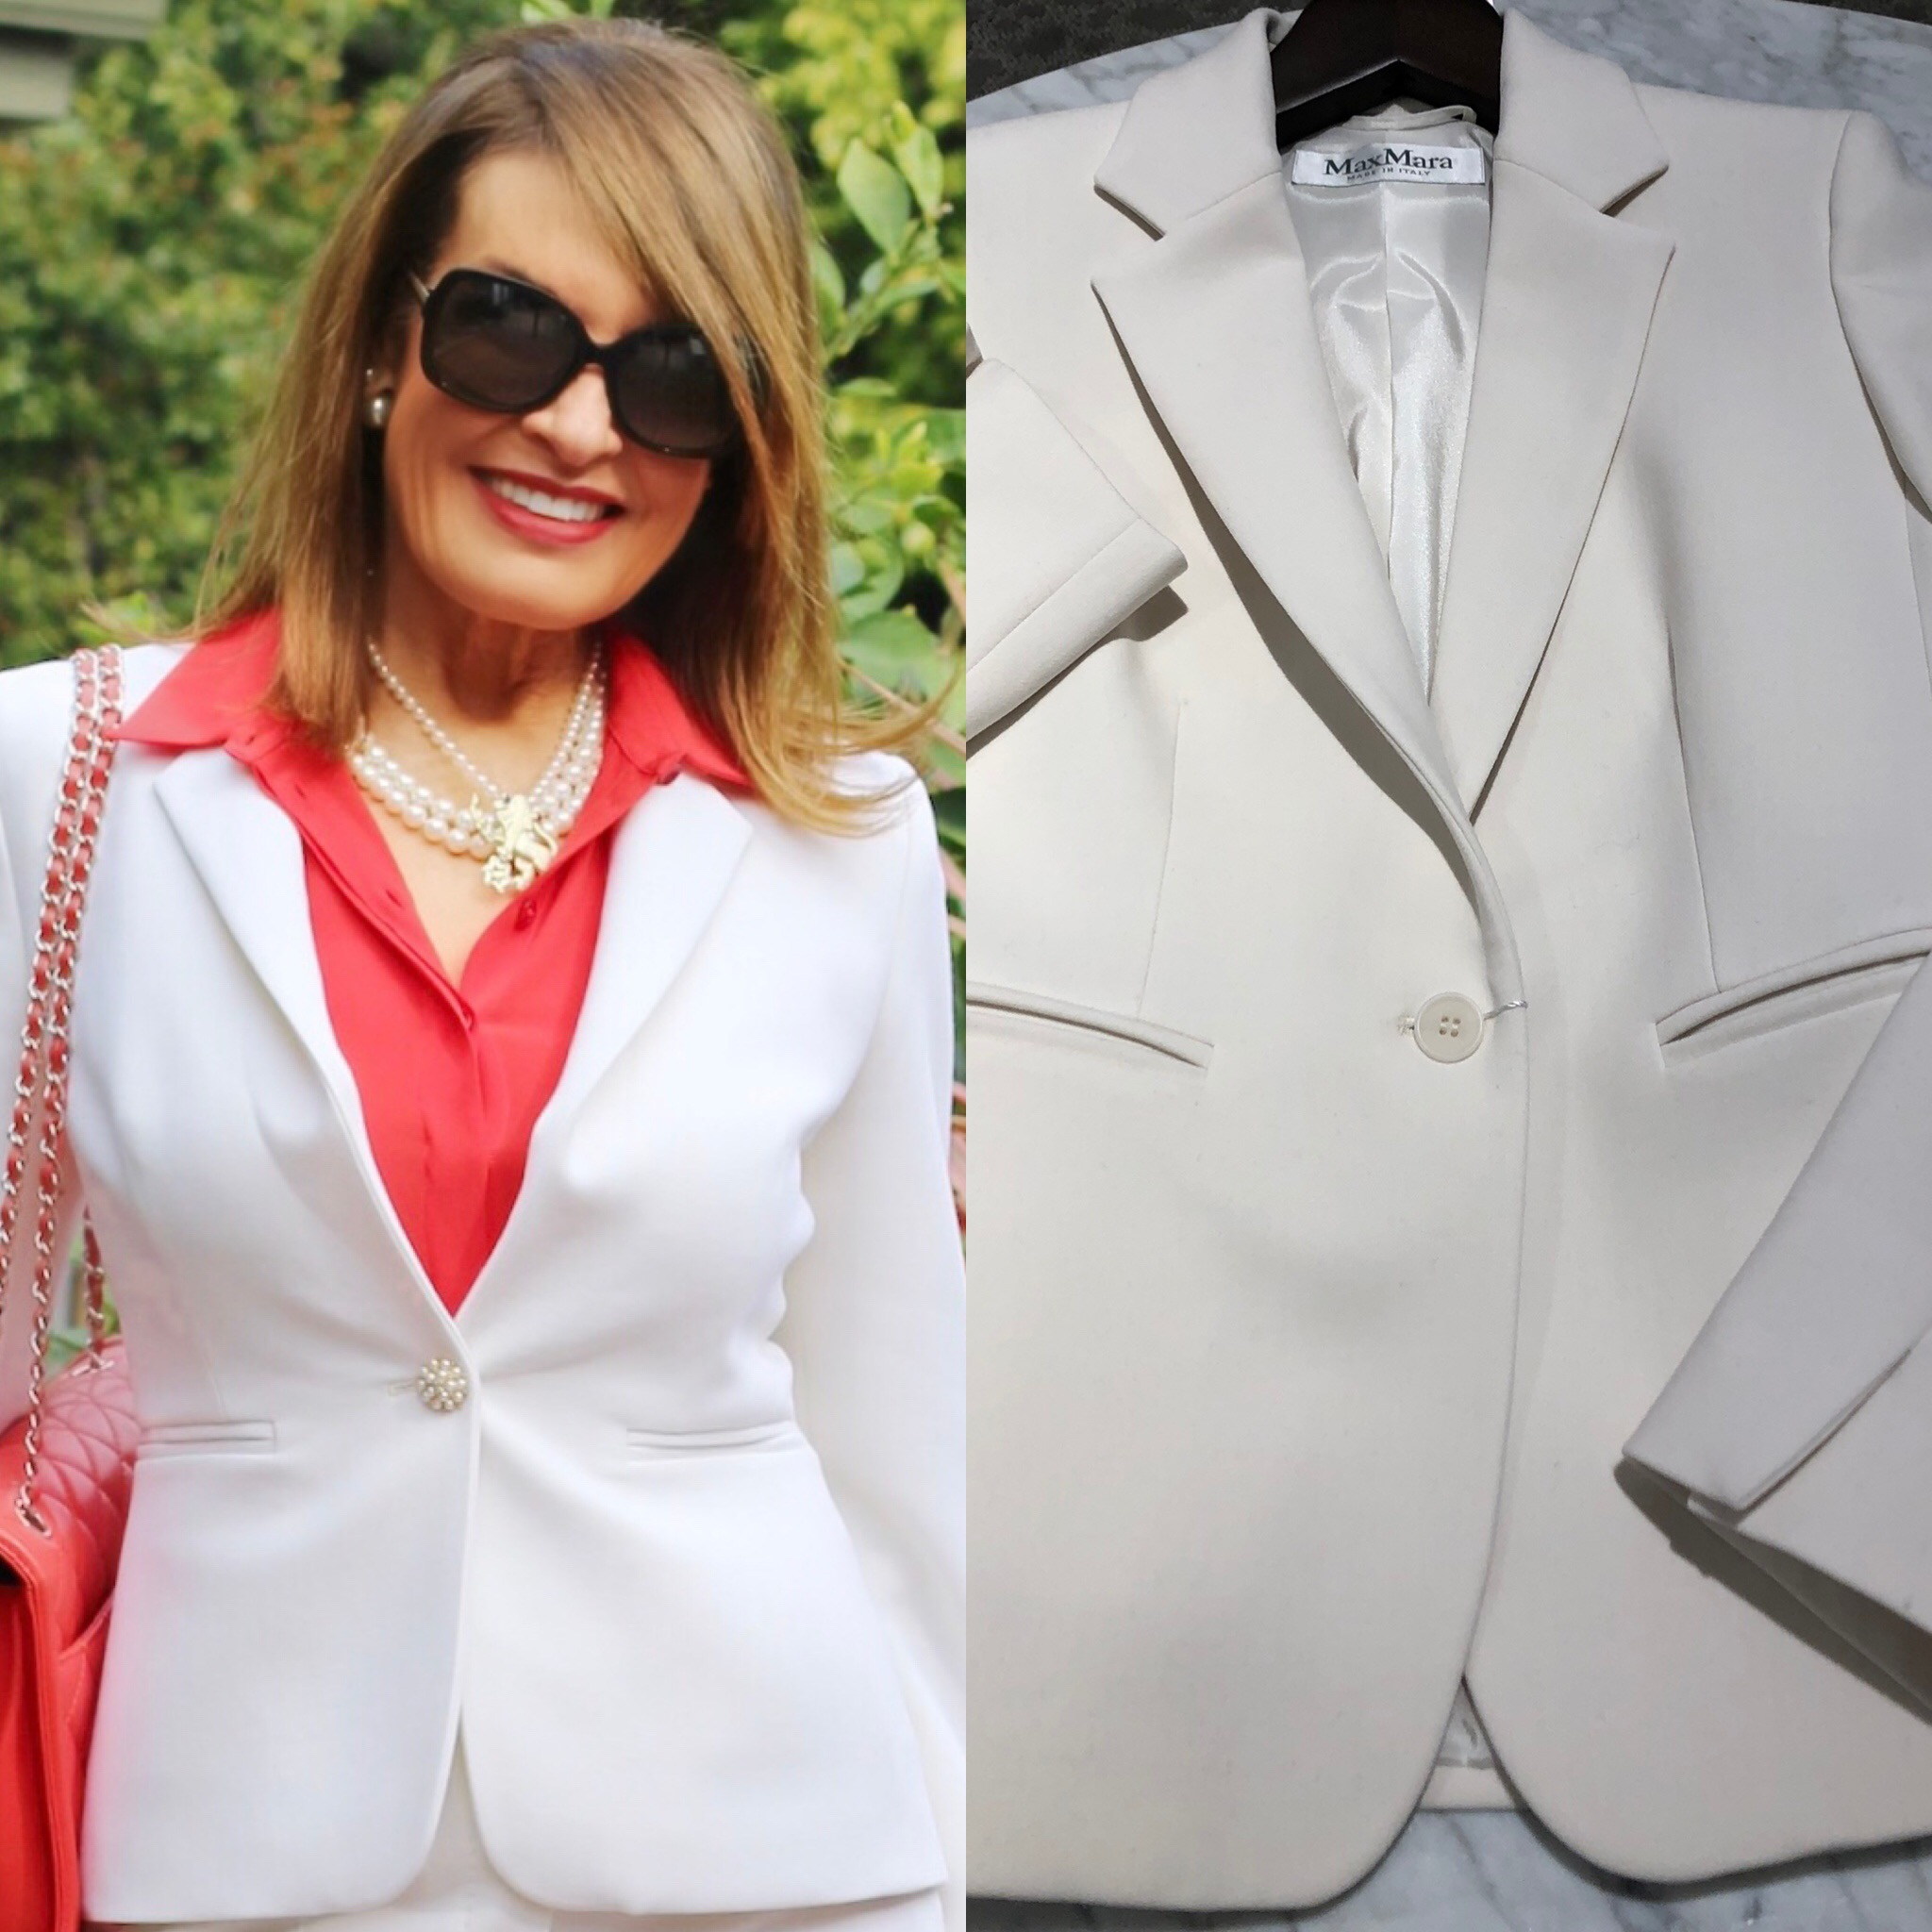 The photo on the right is the jacket with the original button. You can see how enhanced it becomes with the new button!